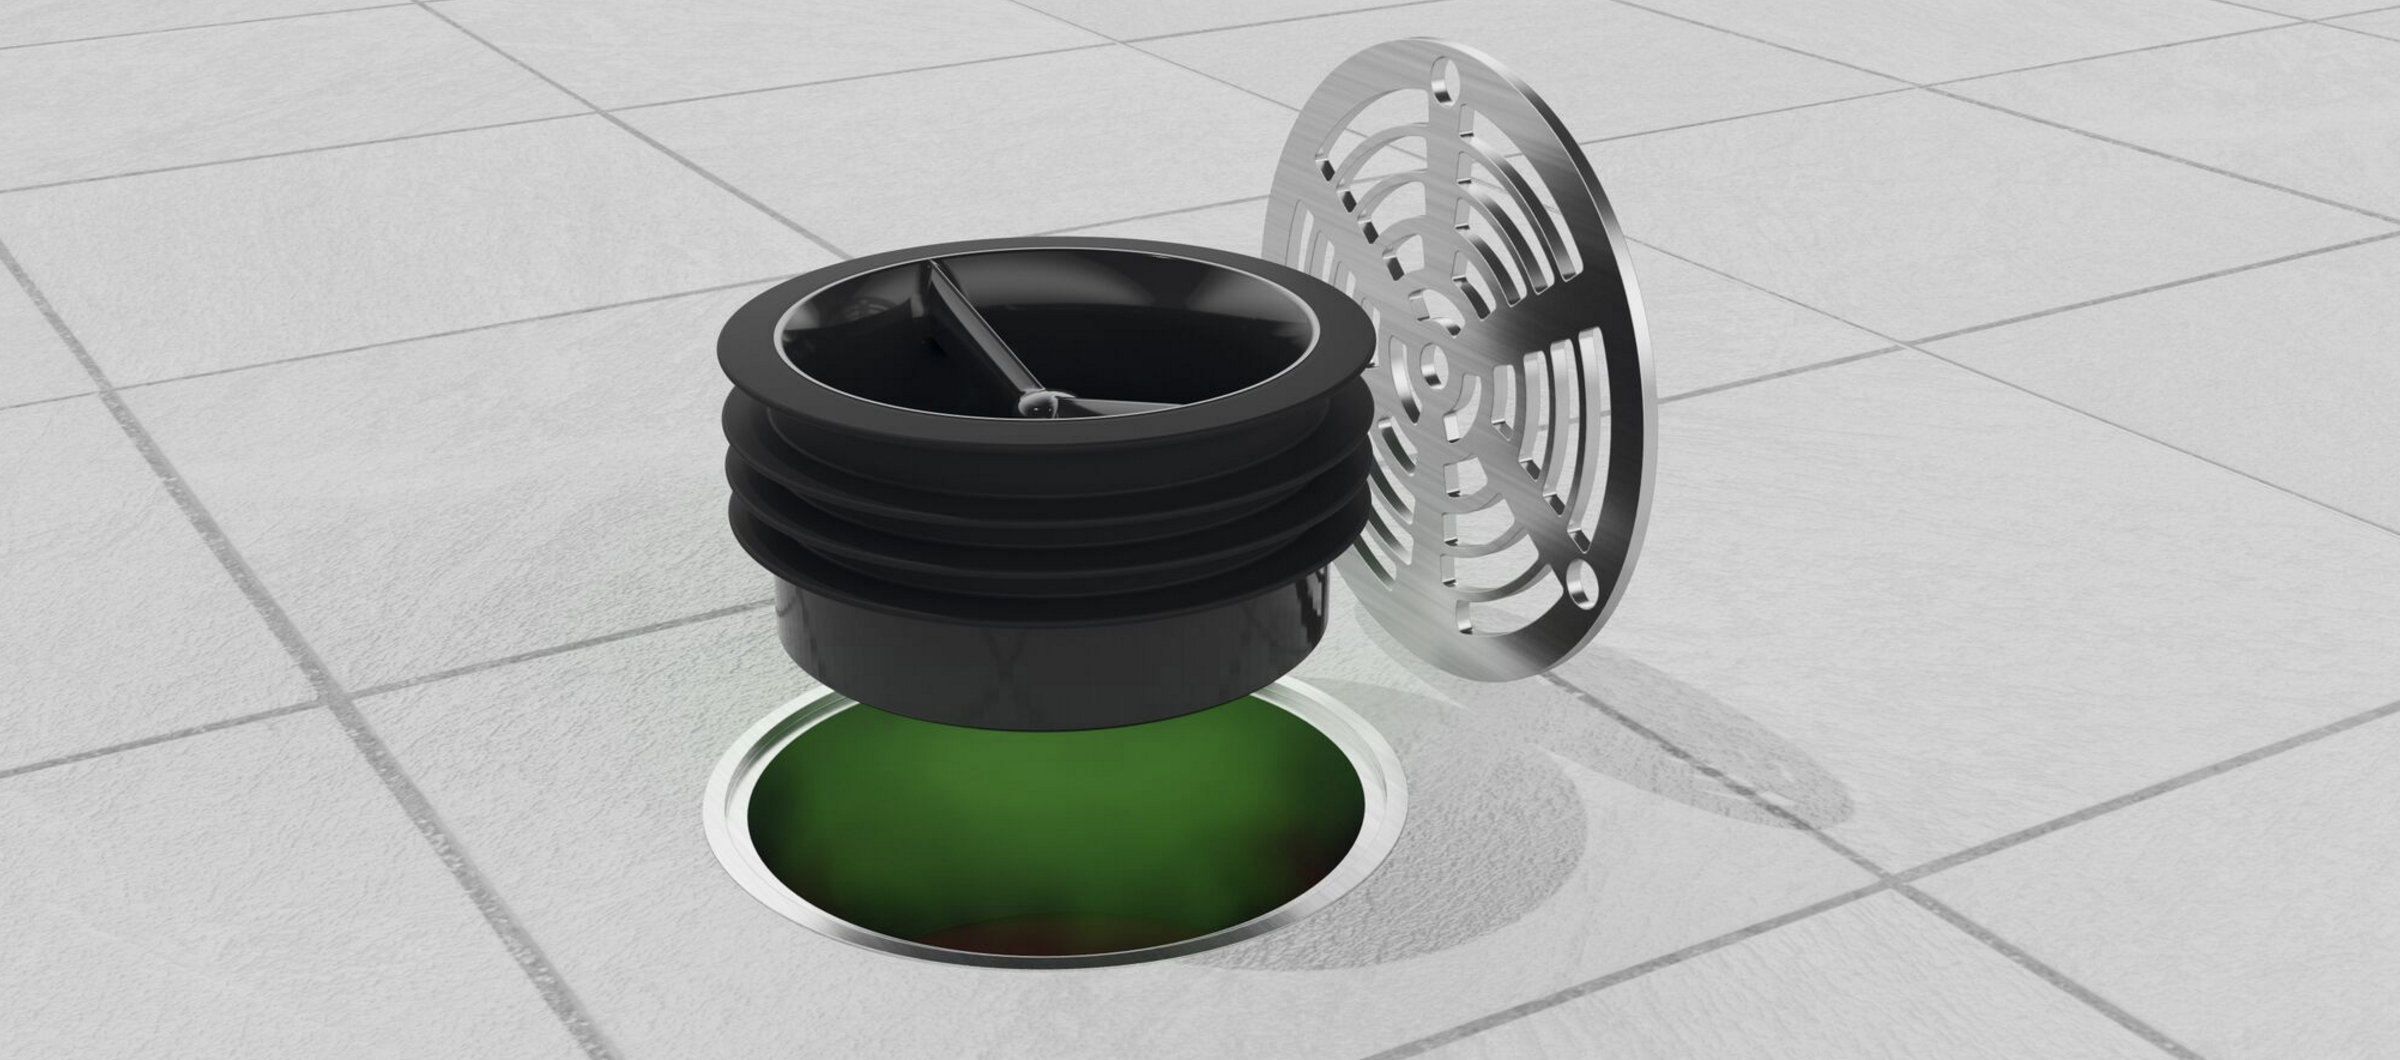 Why ecoprod recommends the green drain floor trap